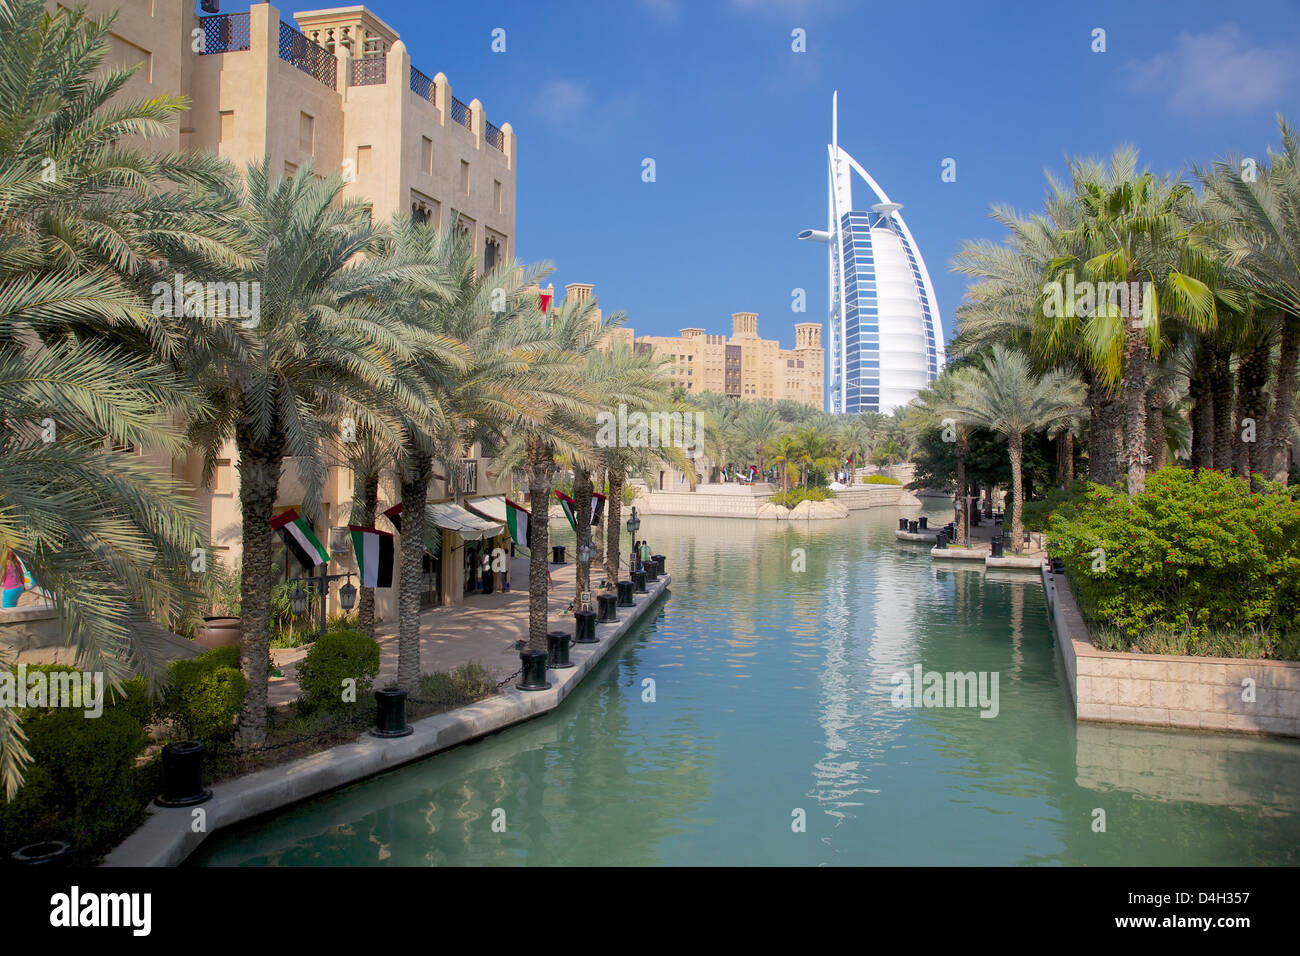 Madinat Jumeirah and Burj Al Arab, Dubai, United Arab Emirates, Middle East - Stock Image